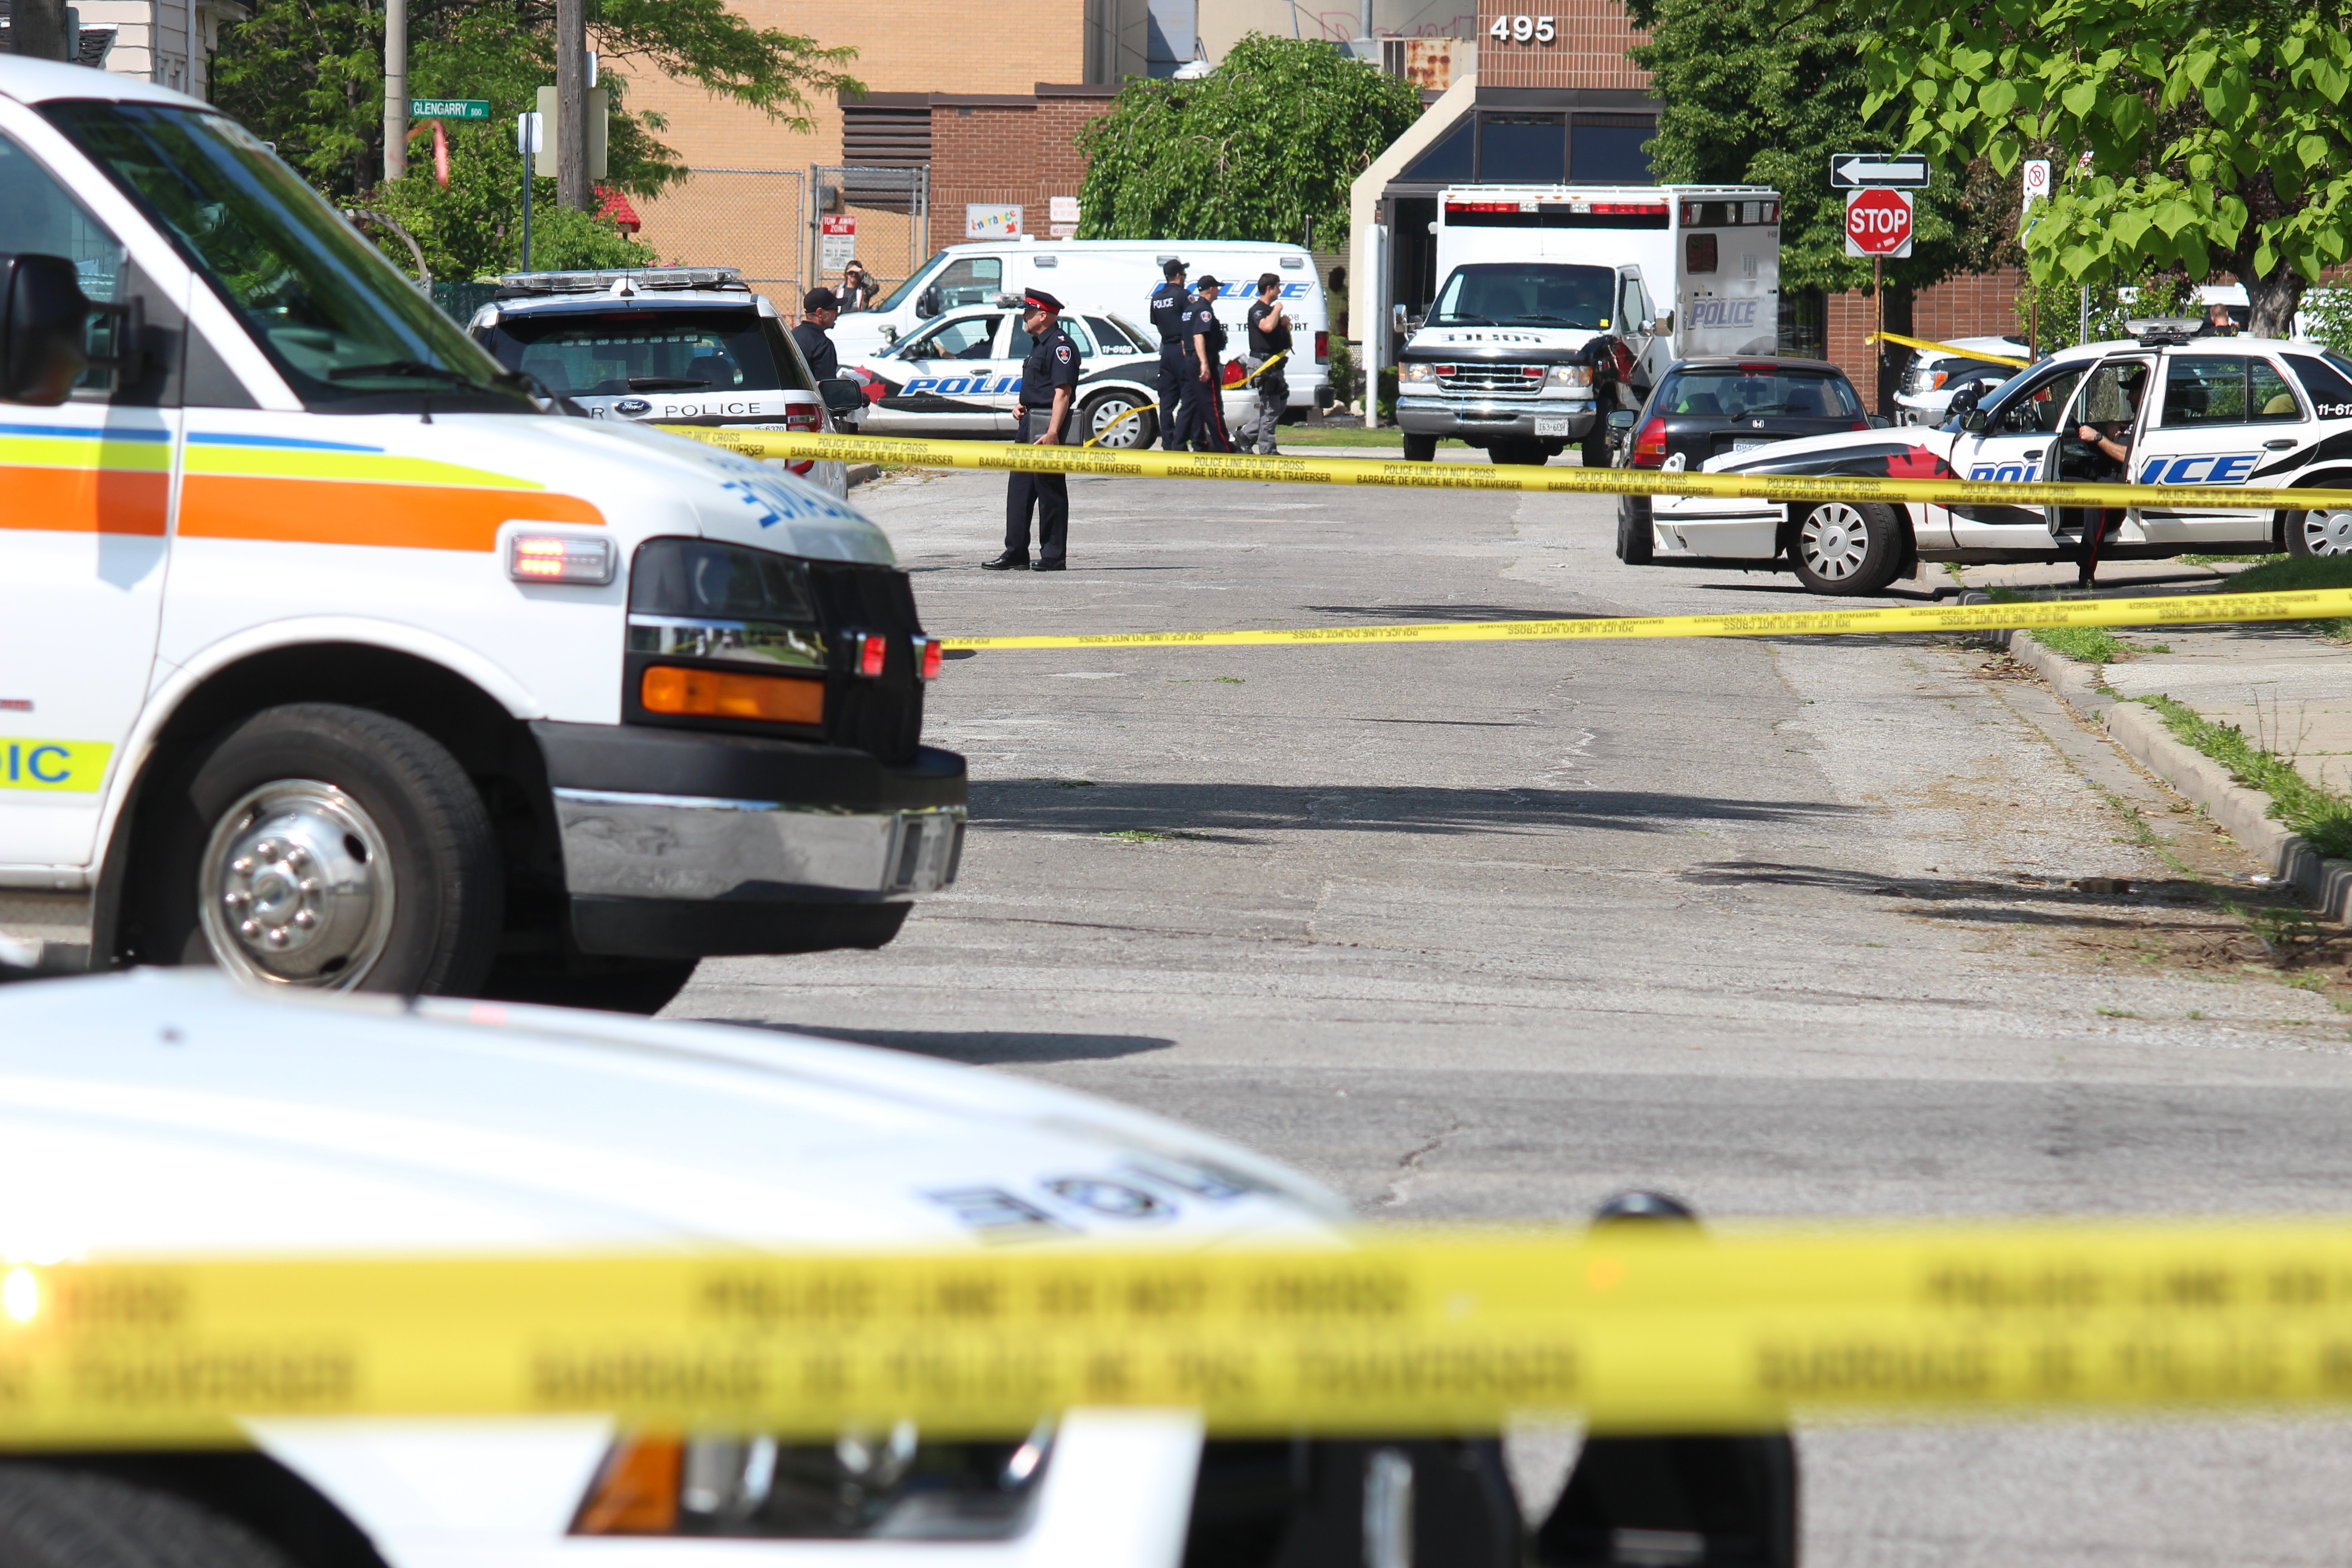 Police investigate an apparent homicide in the 500 block of Brant St., June 4, 2015. (Photo by Jason Viau)